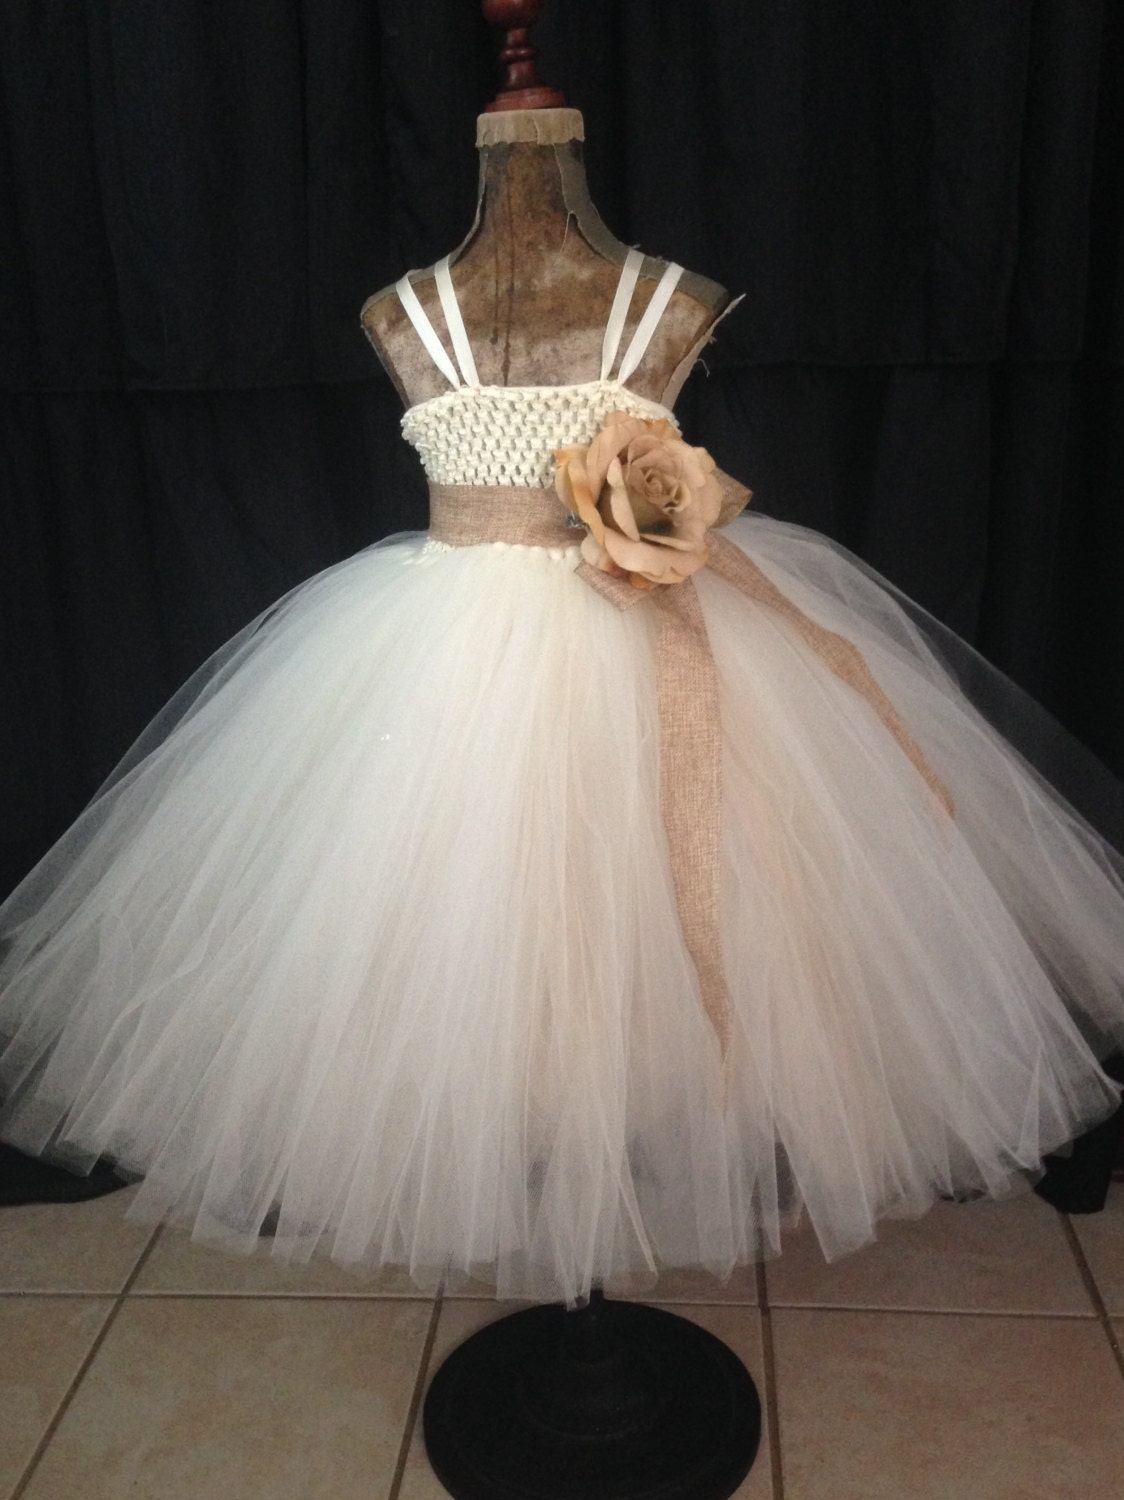 Rustic flower girl dress rustic tutu dress country wedding